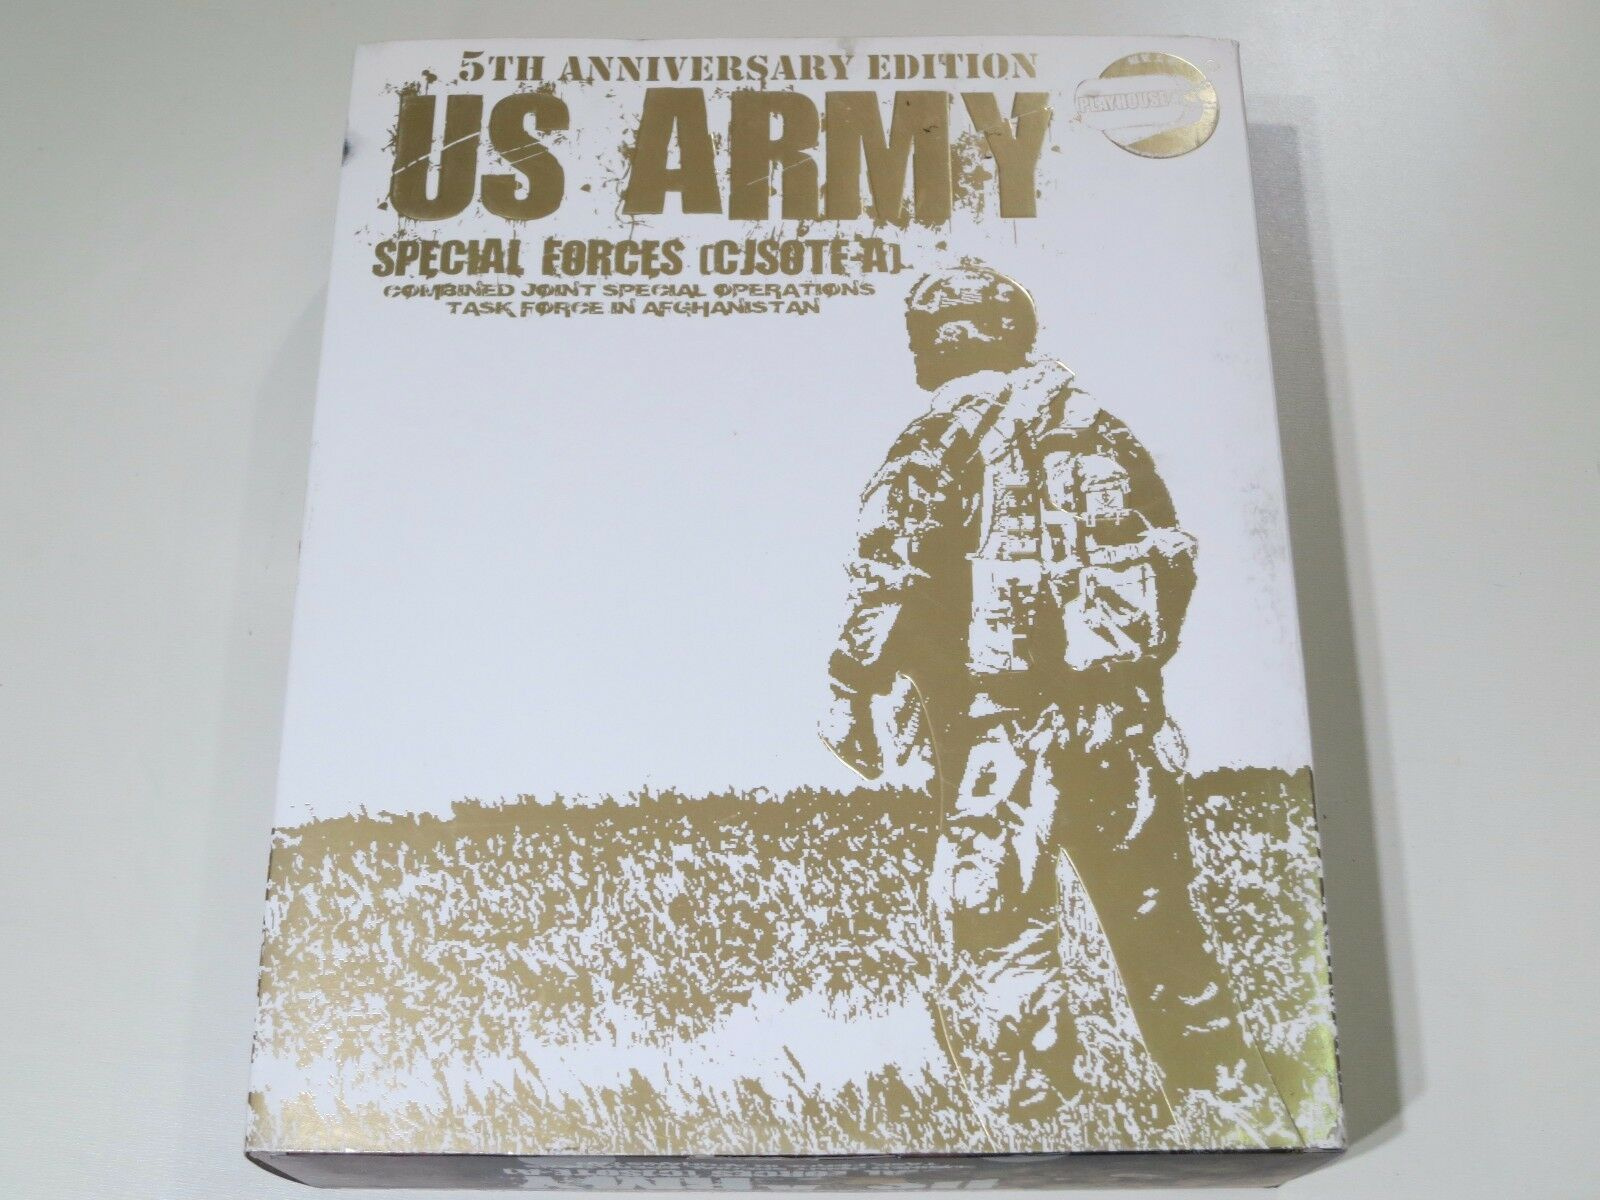 CRAZY DUMMY US Army Special Forces (CJSOTF-A) BRAND NEW  PH014 5th Anniversary